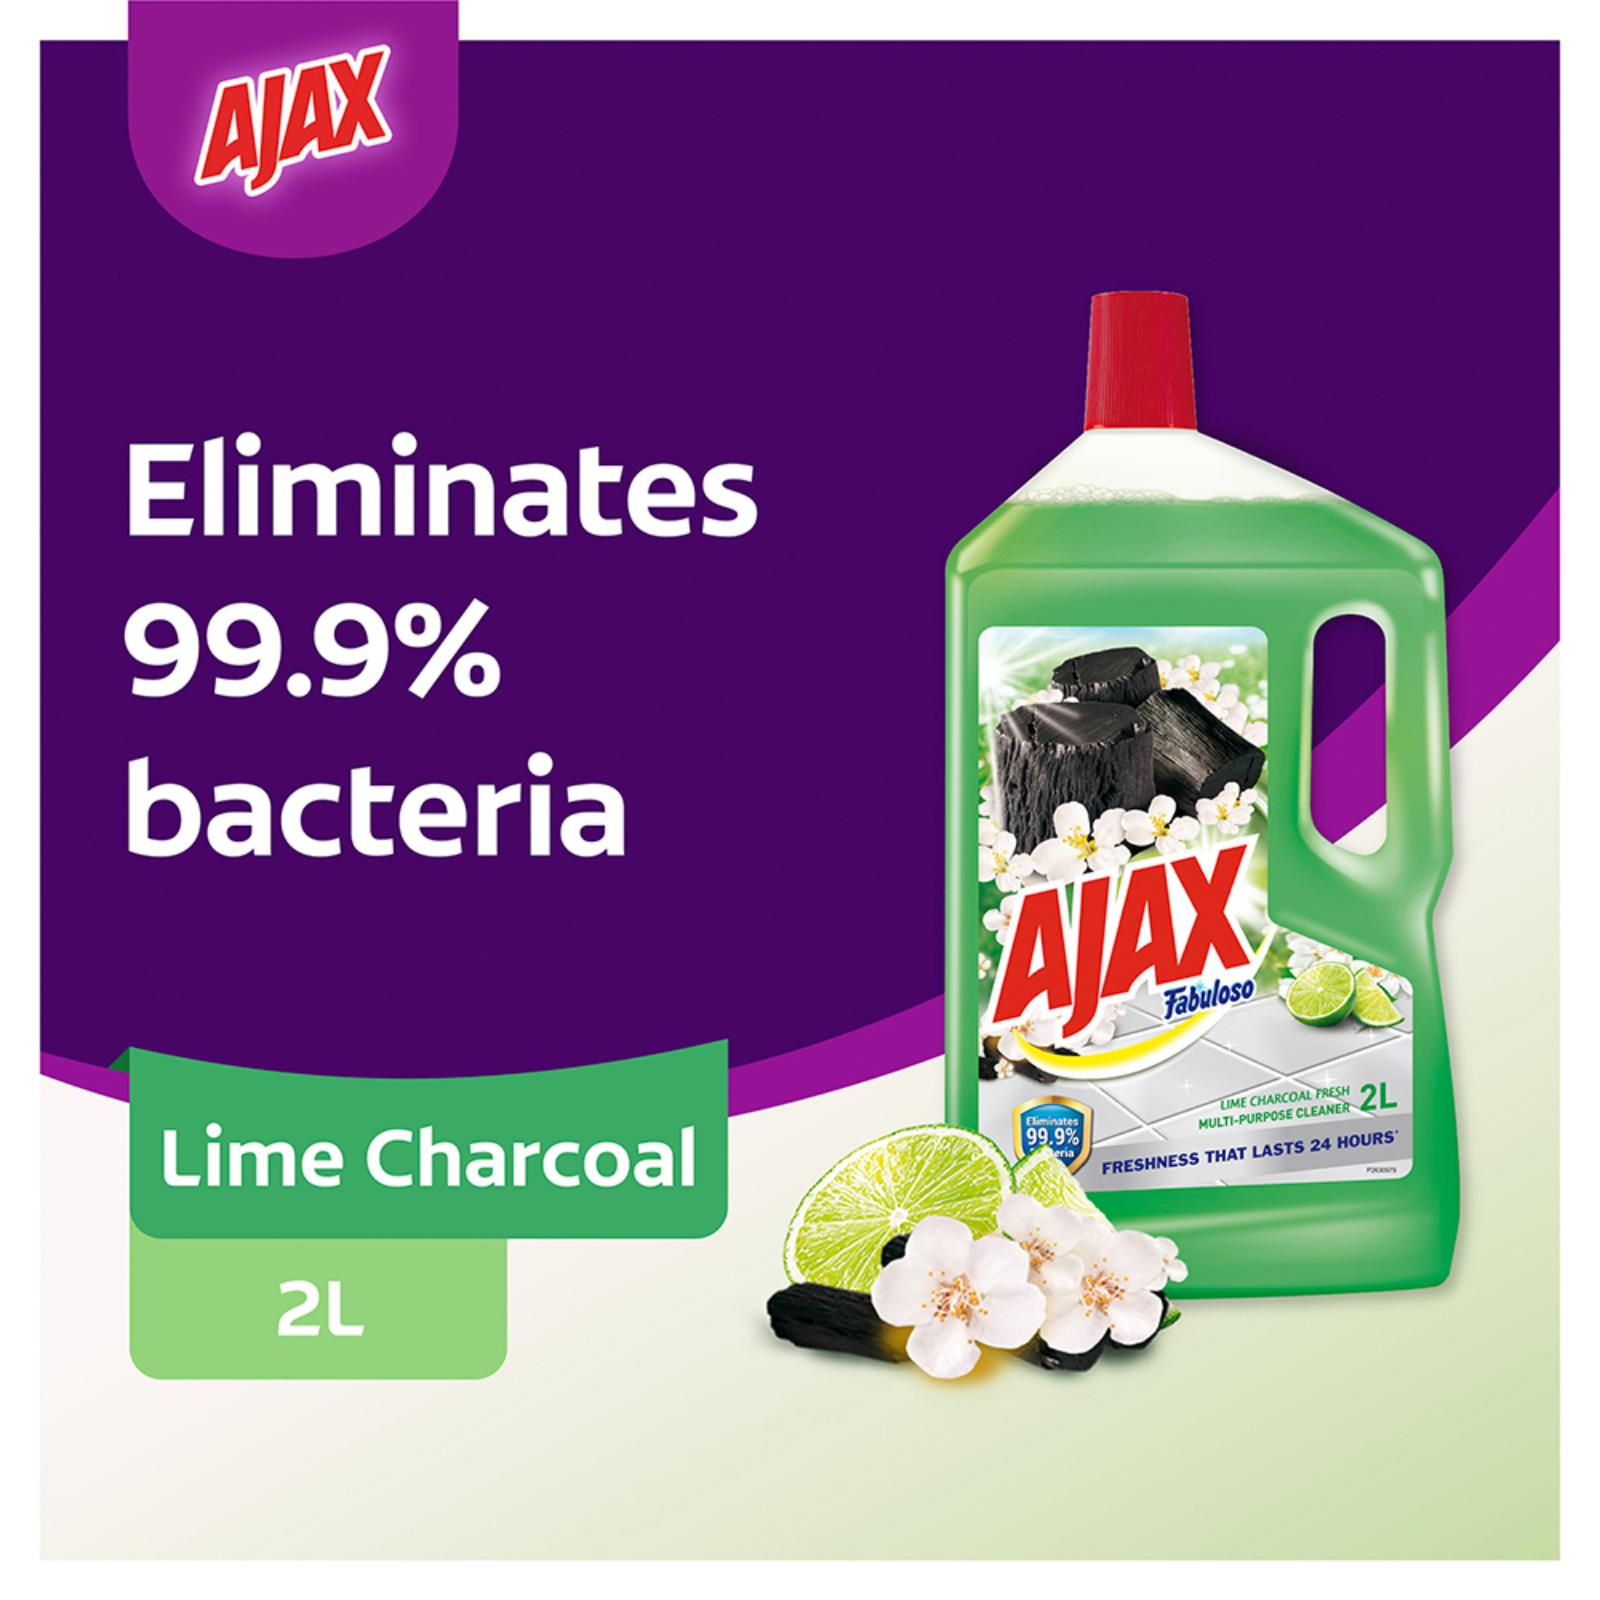 Ajax Fabuloso Lime Charcoal Antibacterial Multi Purpose Floor Cleaner 2L